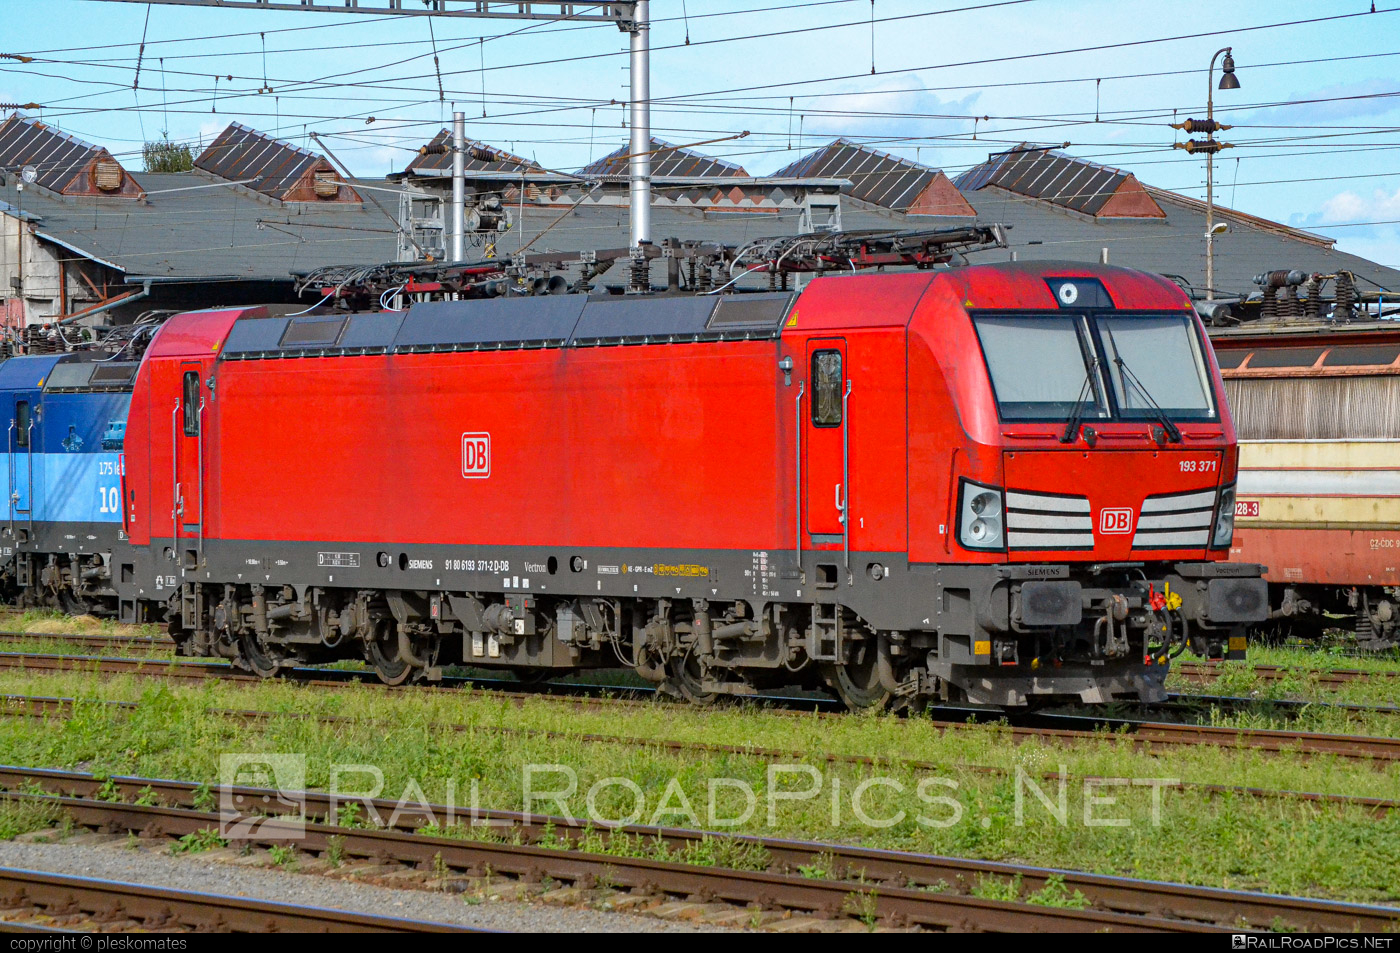 Siemens Vectron MS - 193 371-2 operated by DB Cargo AG #db #dbcargo #dbcargoag #siemens #siemensvectron #siemensvectronms #vectron #vectronms